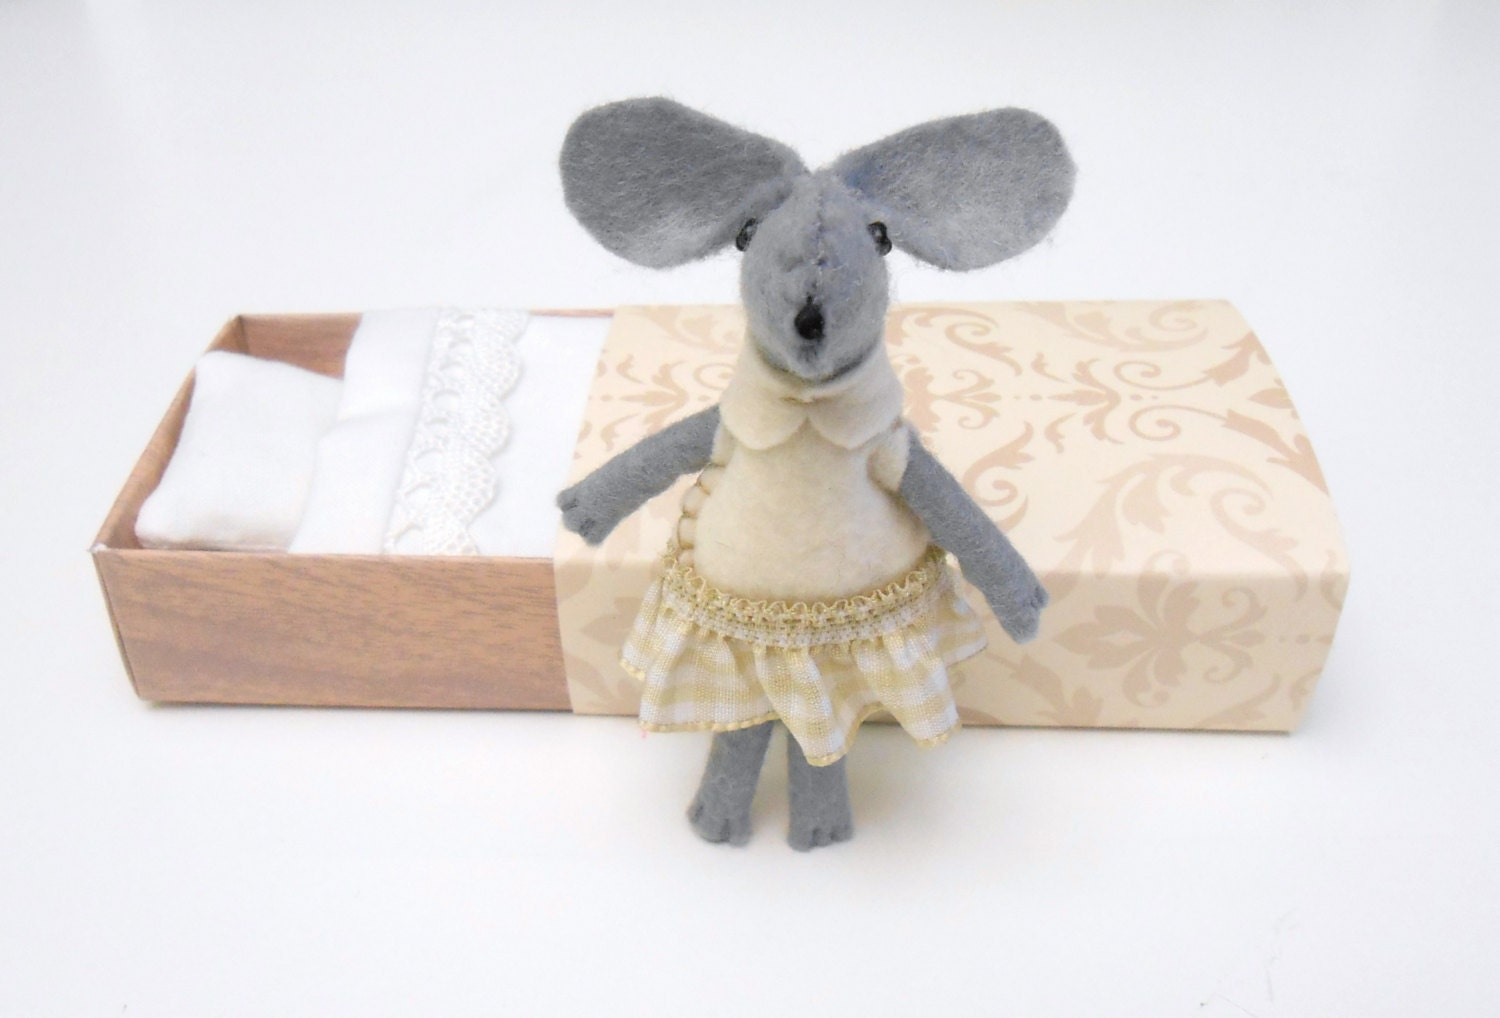 Plush mouse felt miniature gray cream brown - atelierpompadour